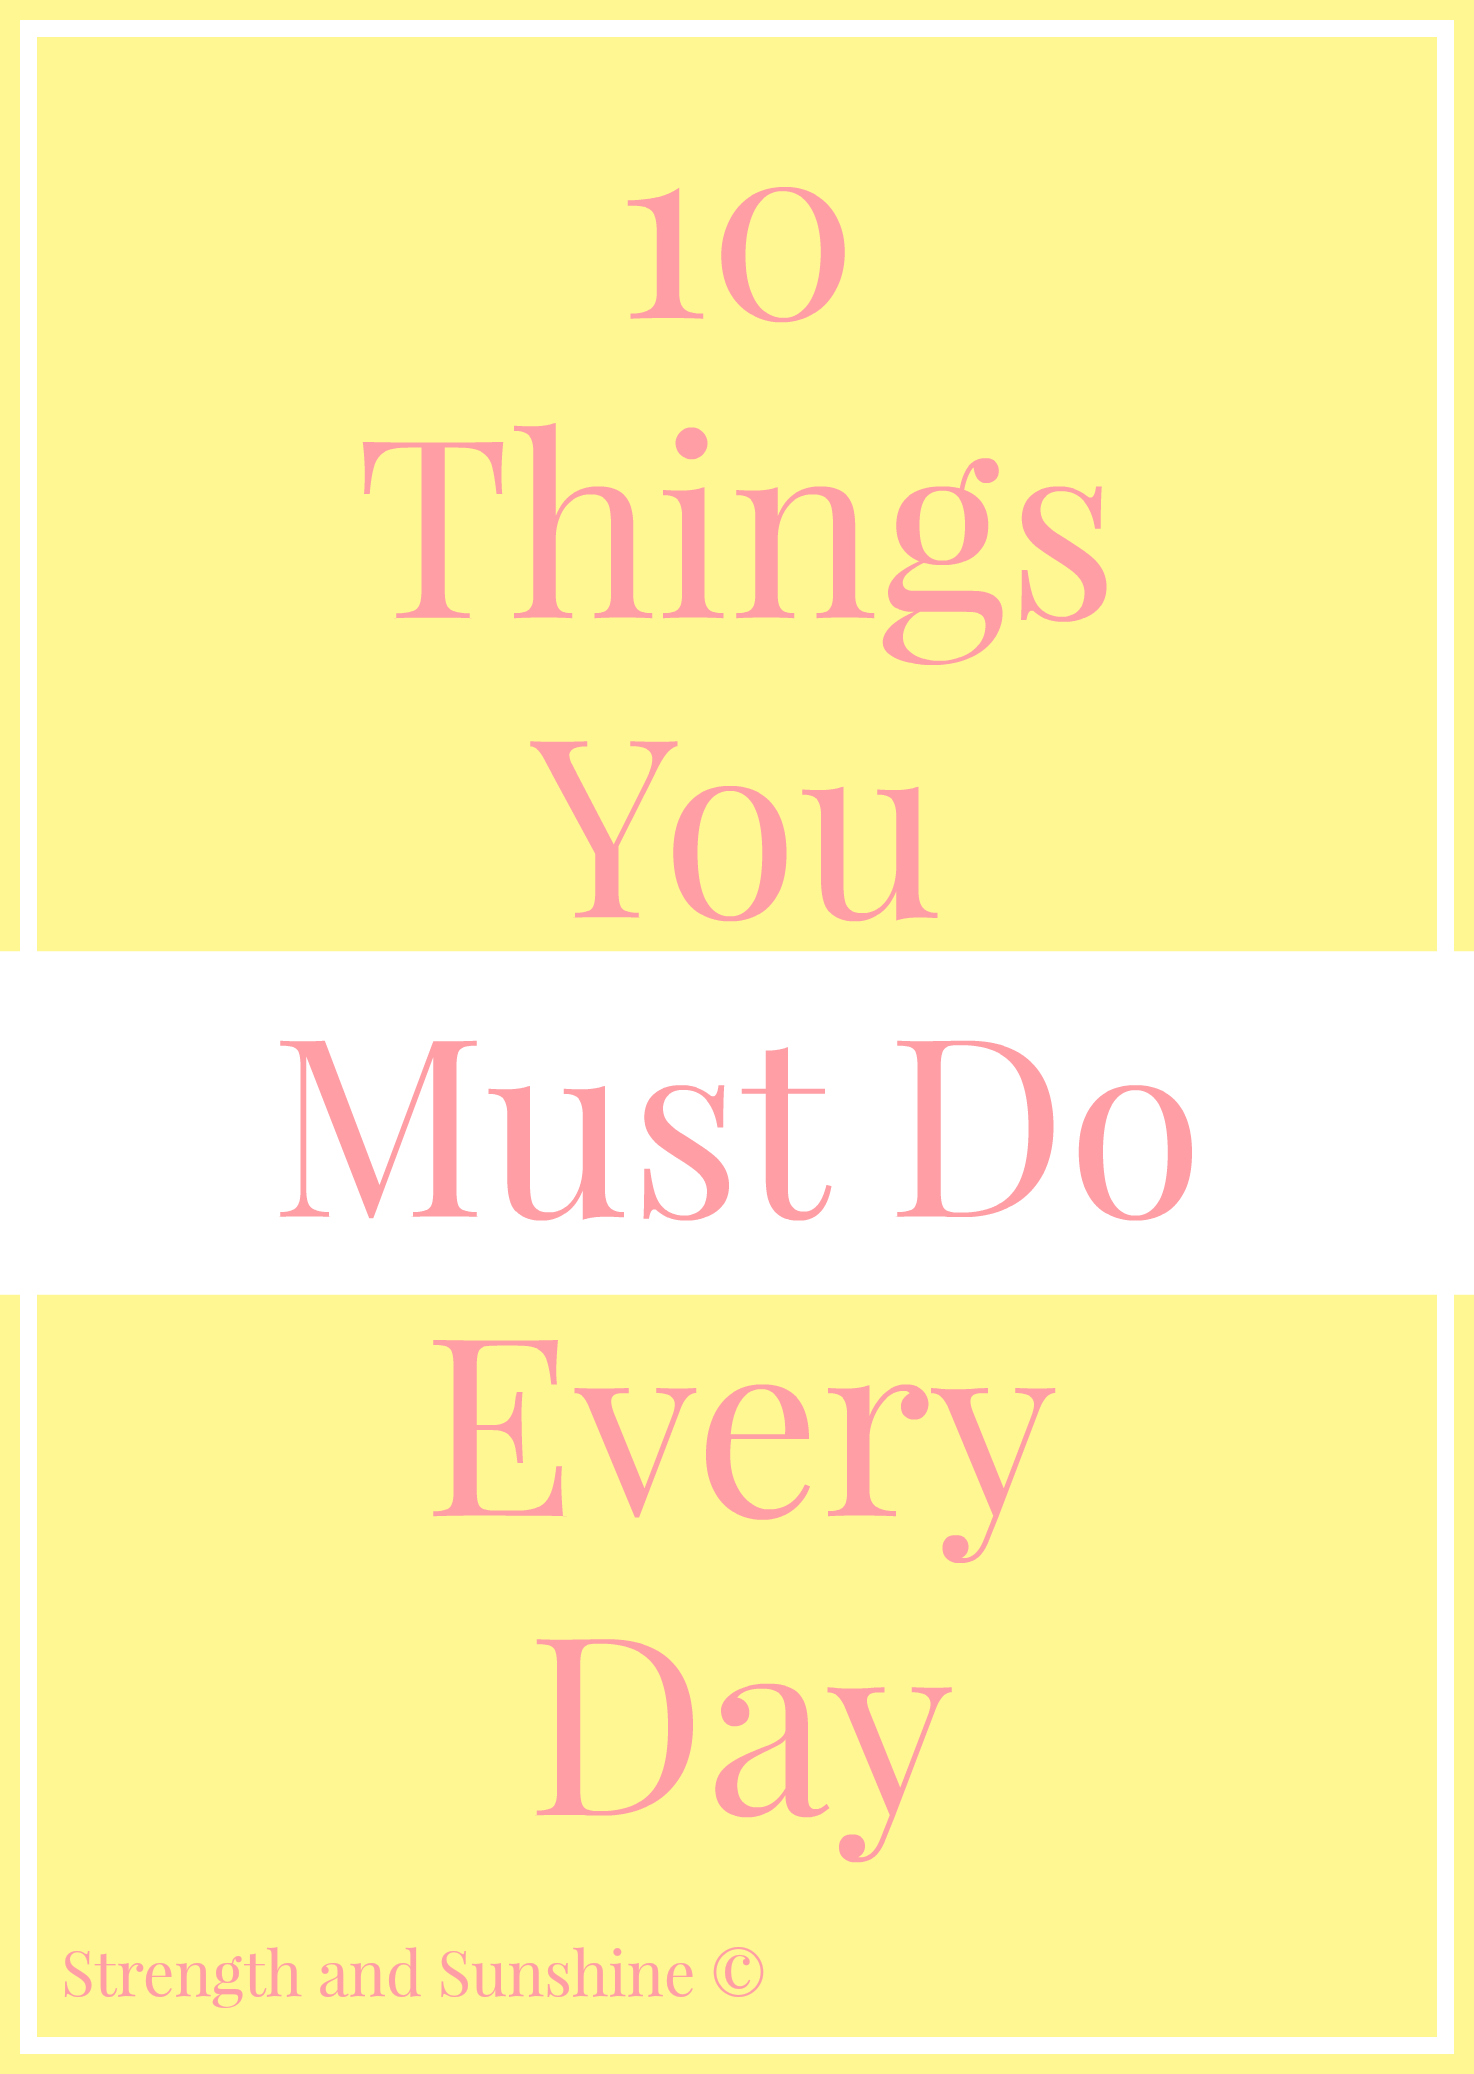 10 Things You Must Do Every Day from Strength and Sunshine